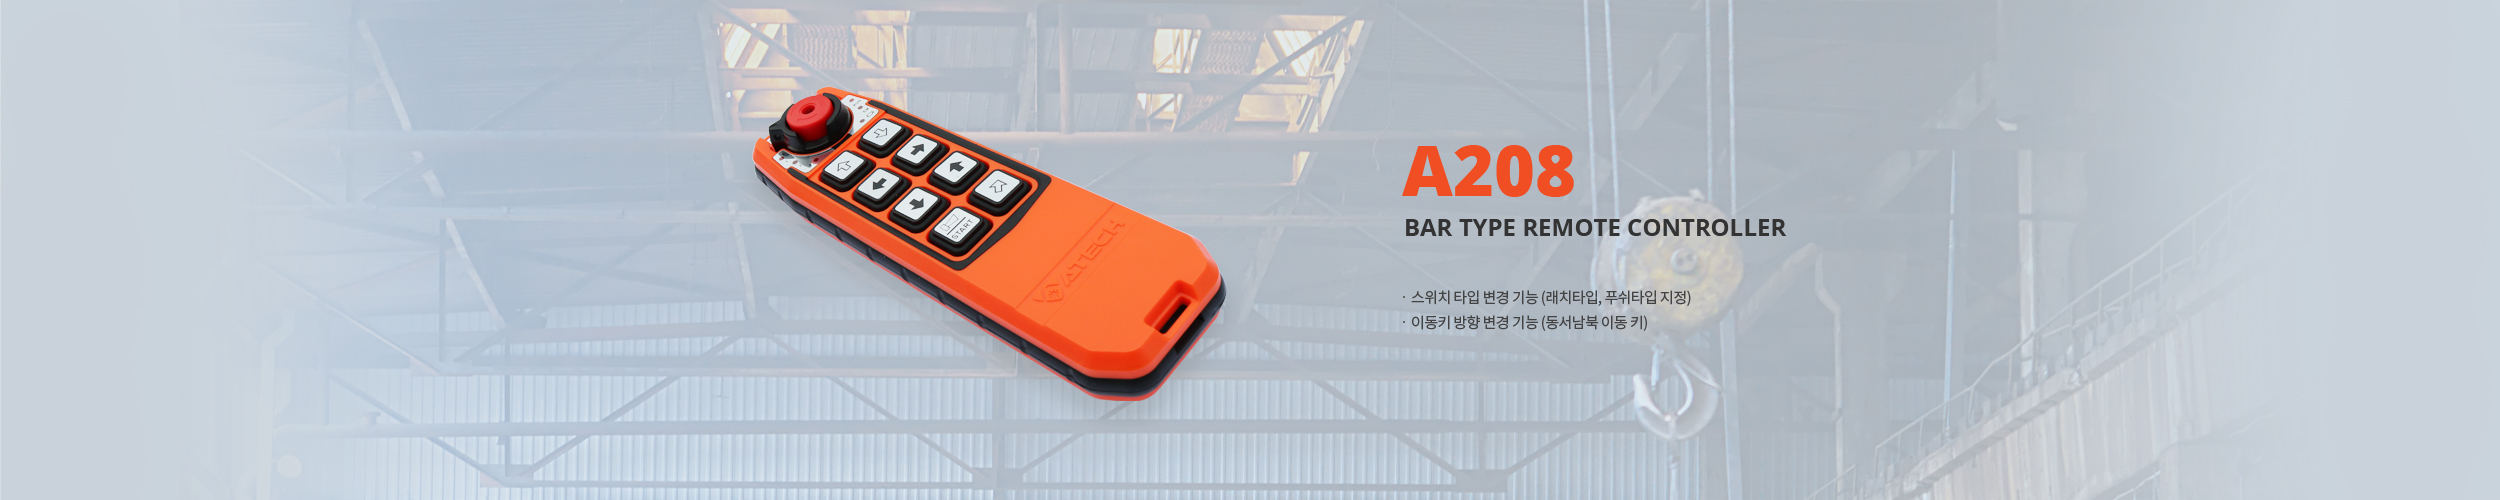 A208, BAR Type Remote Controller